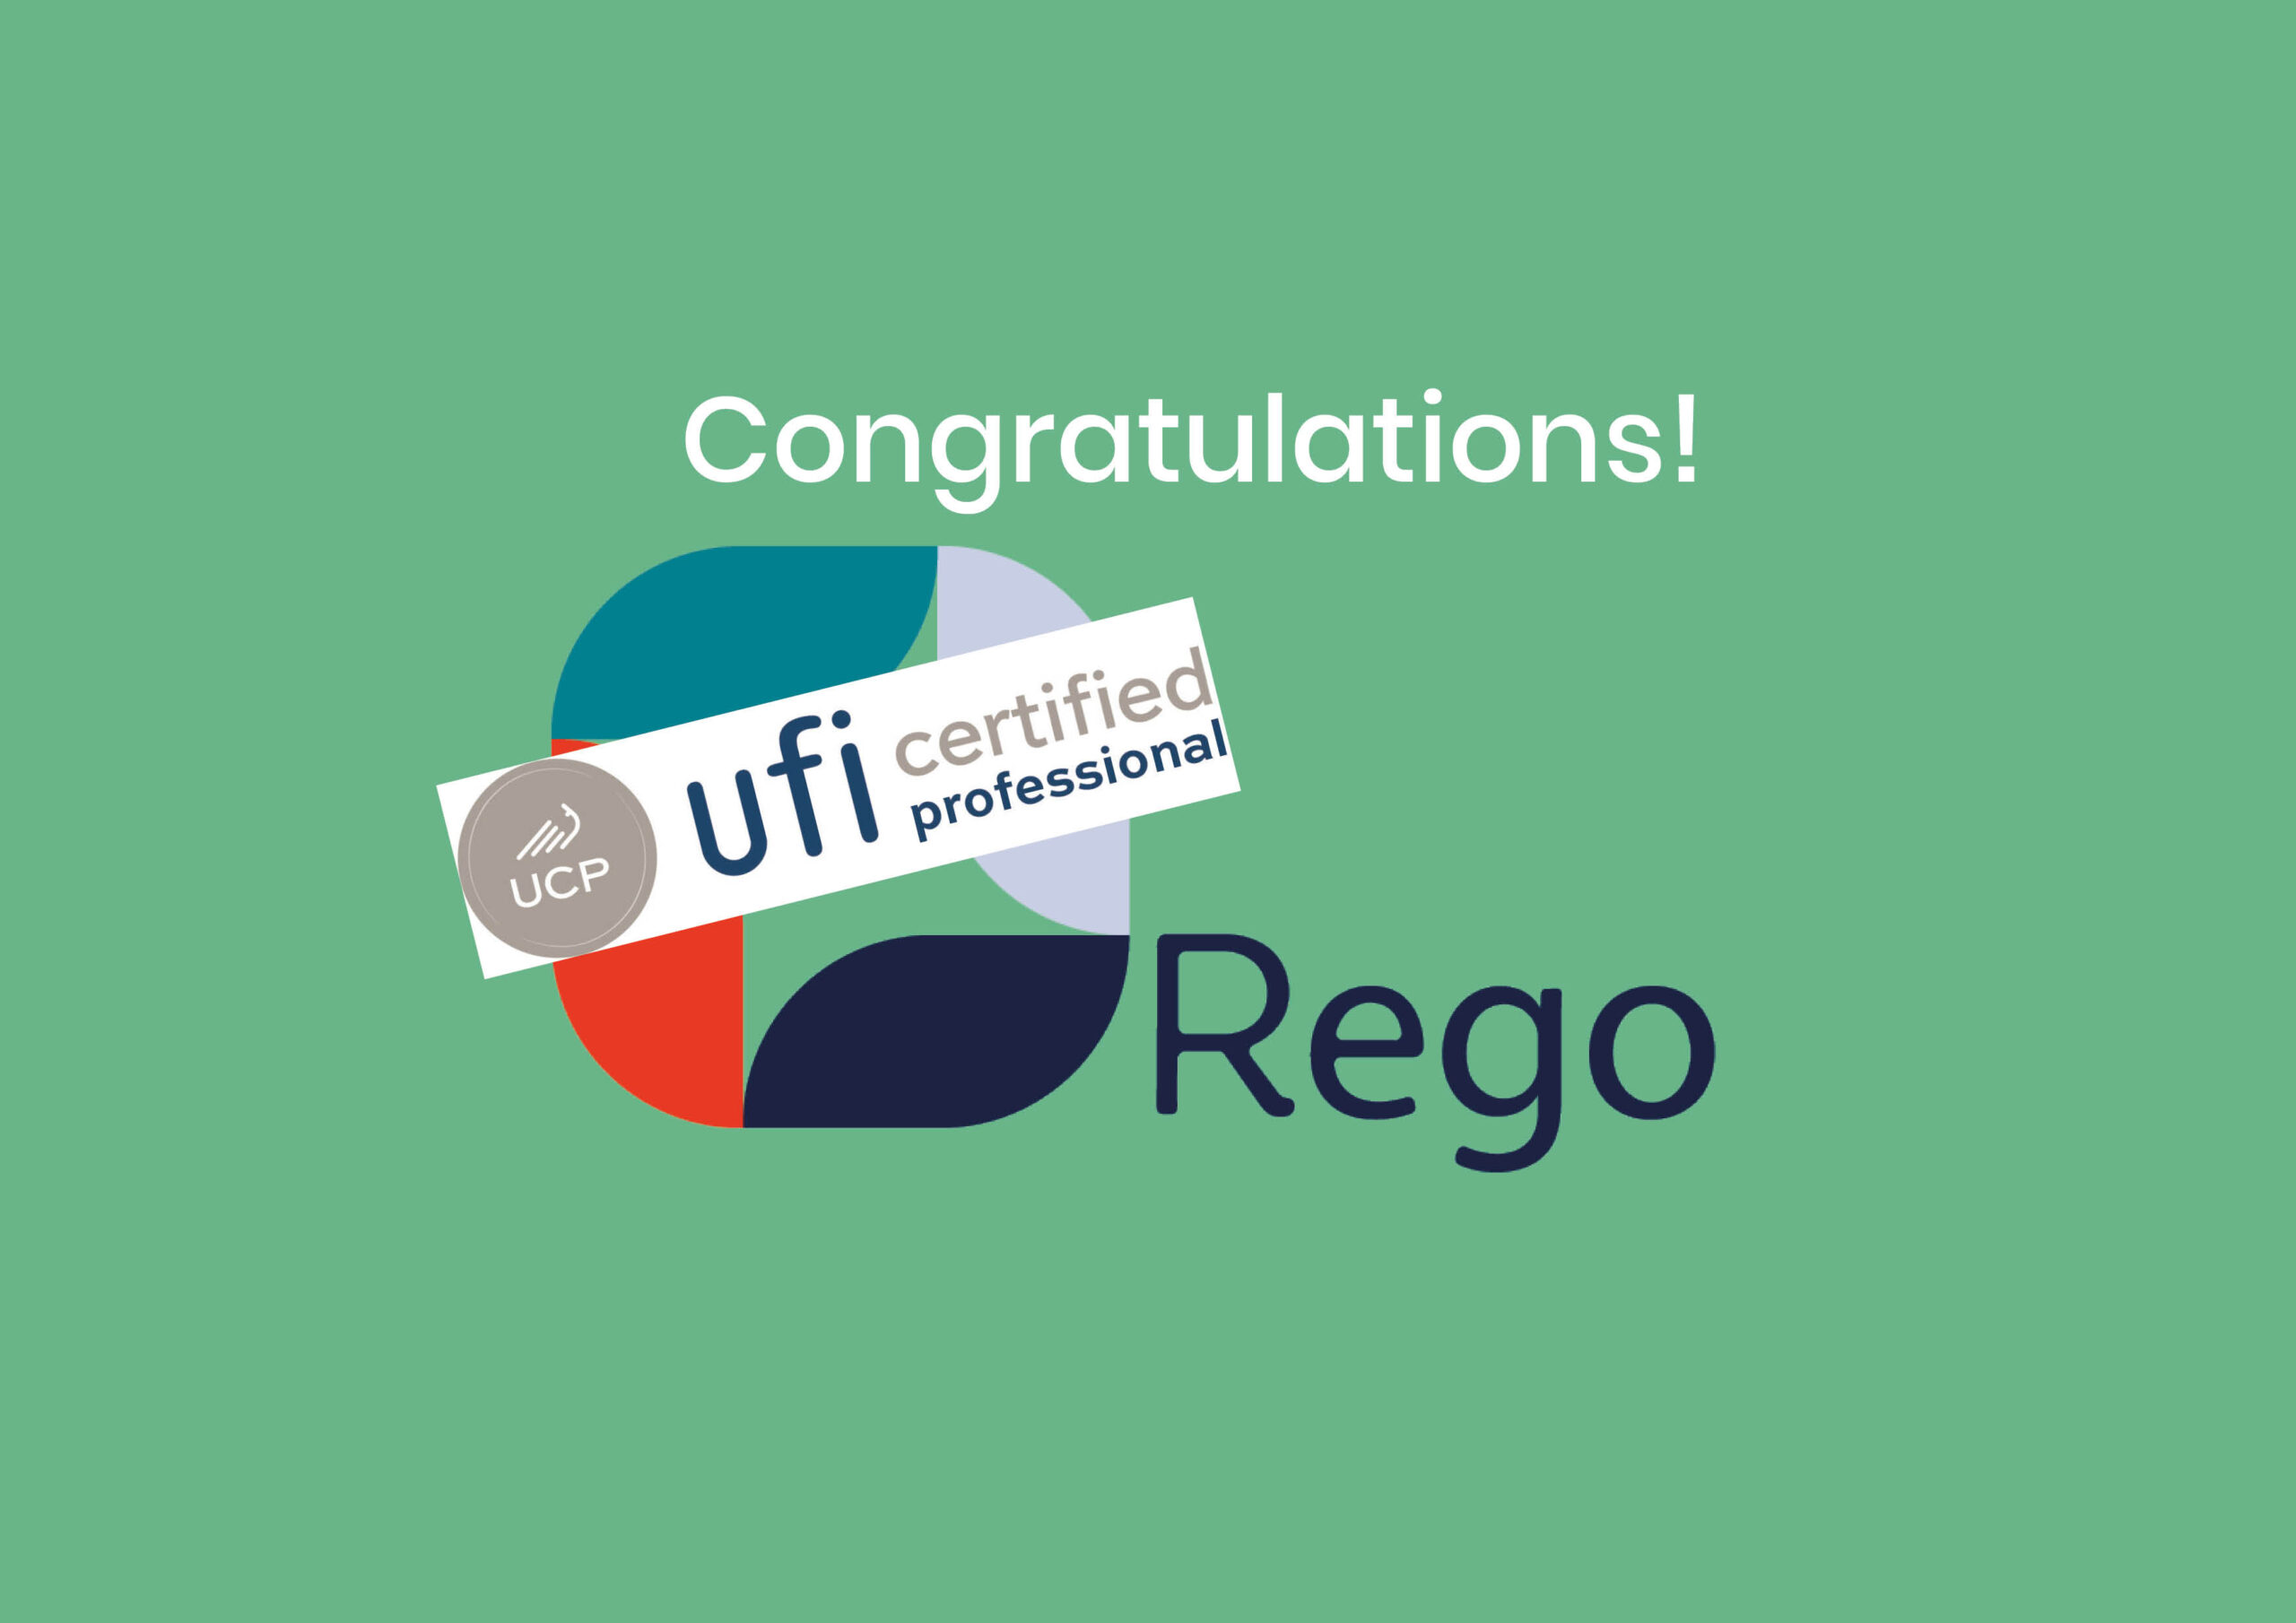 Rego, our Academy partner received the UFI Certified Professional (UCP) designation.